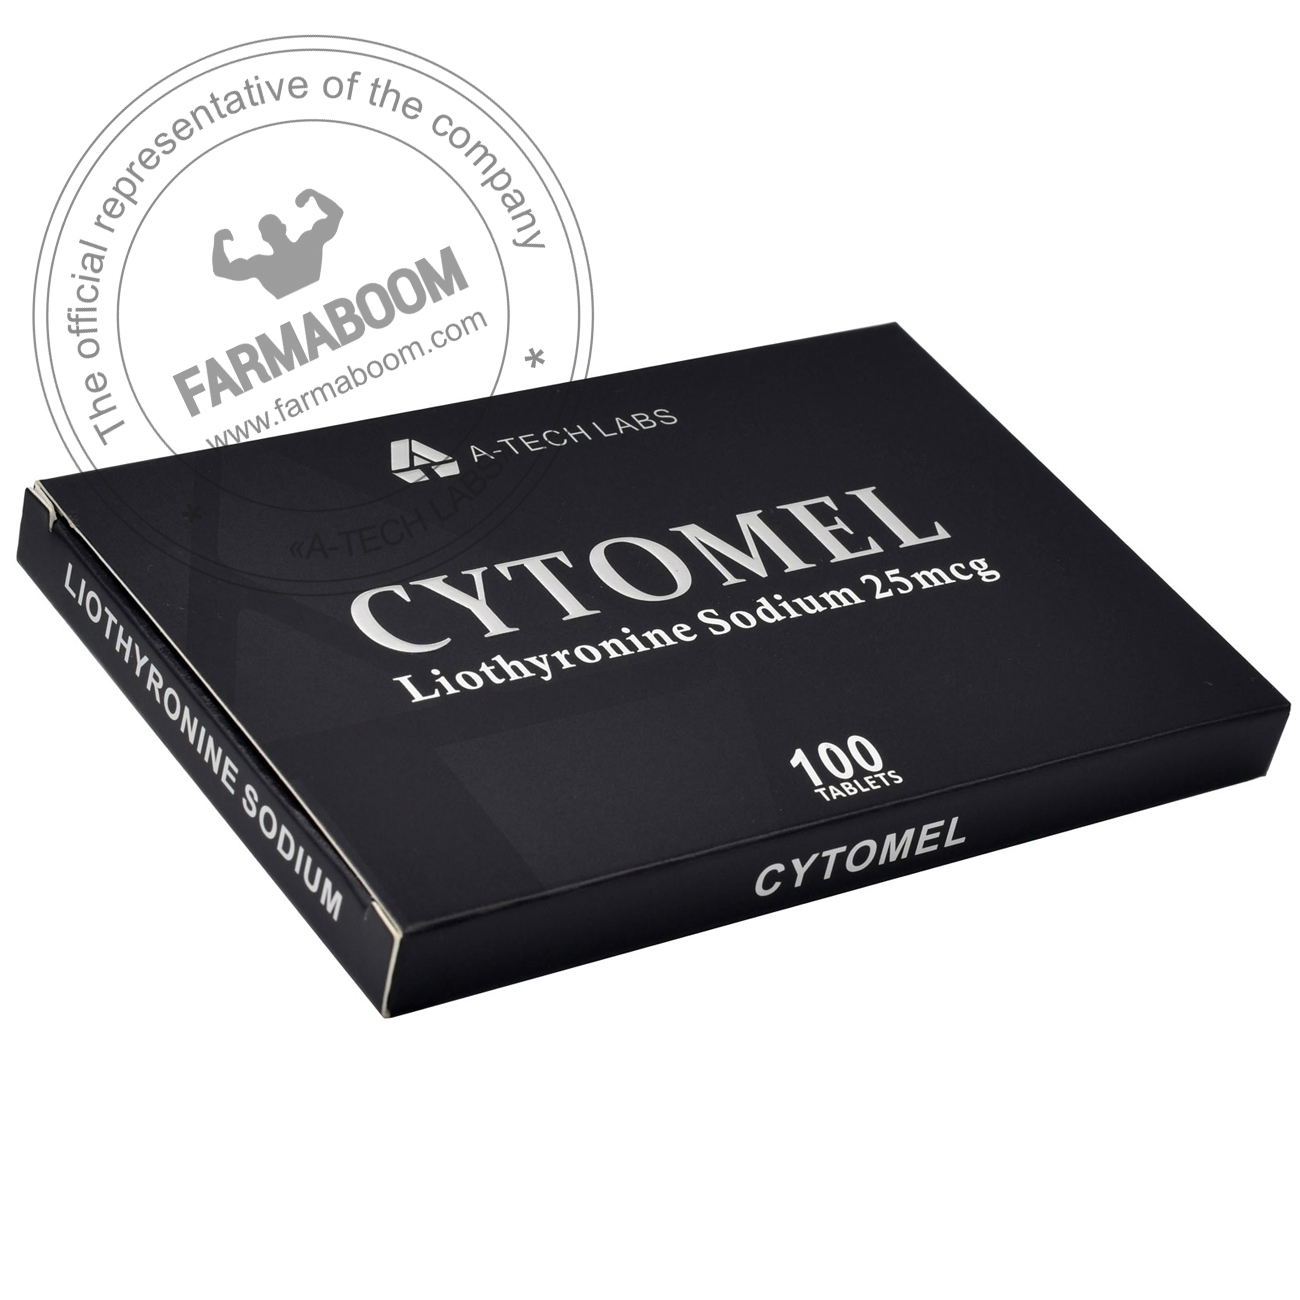 CYTOMEL_A-TECH LABS_farmaboom_com